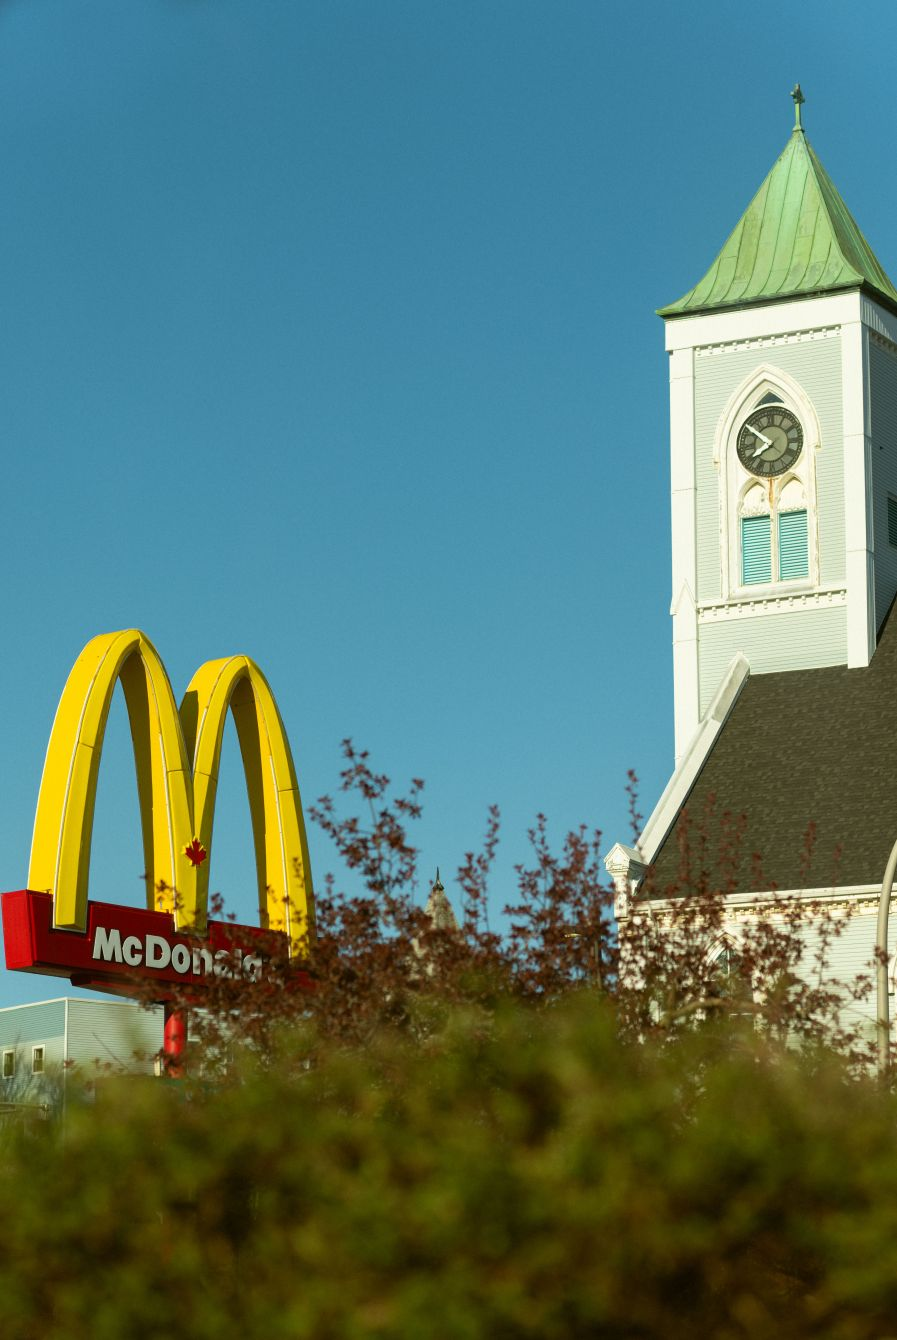 Click thumbnail to see details about photo - Mcdonalds and a Church Steeple